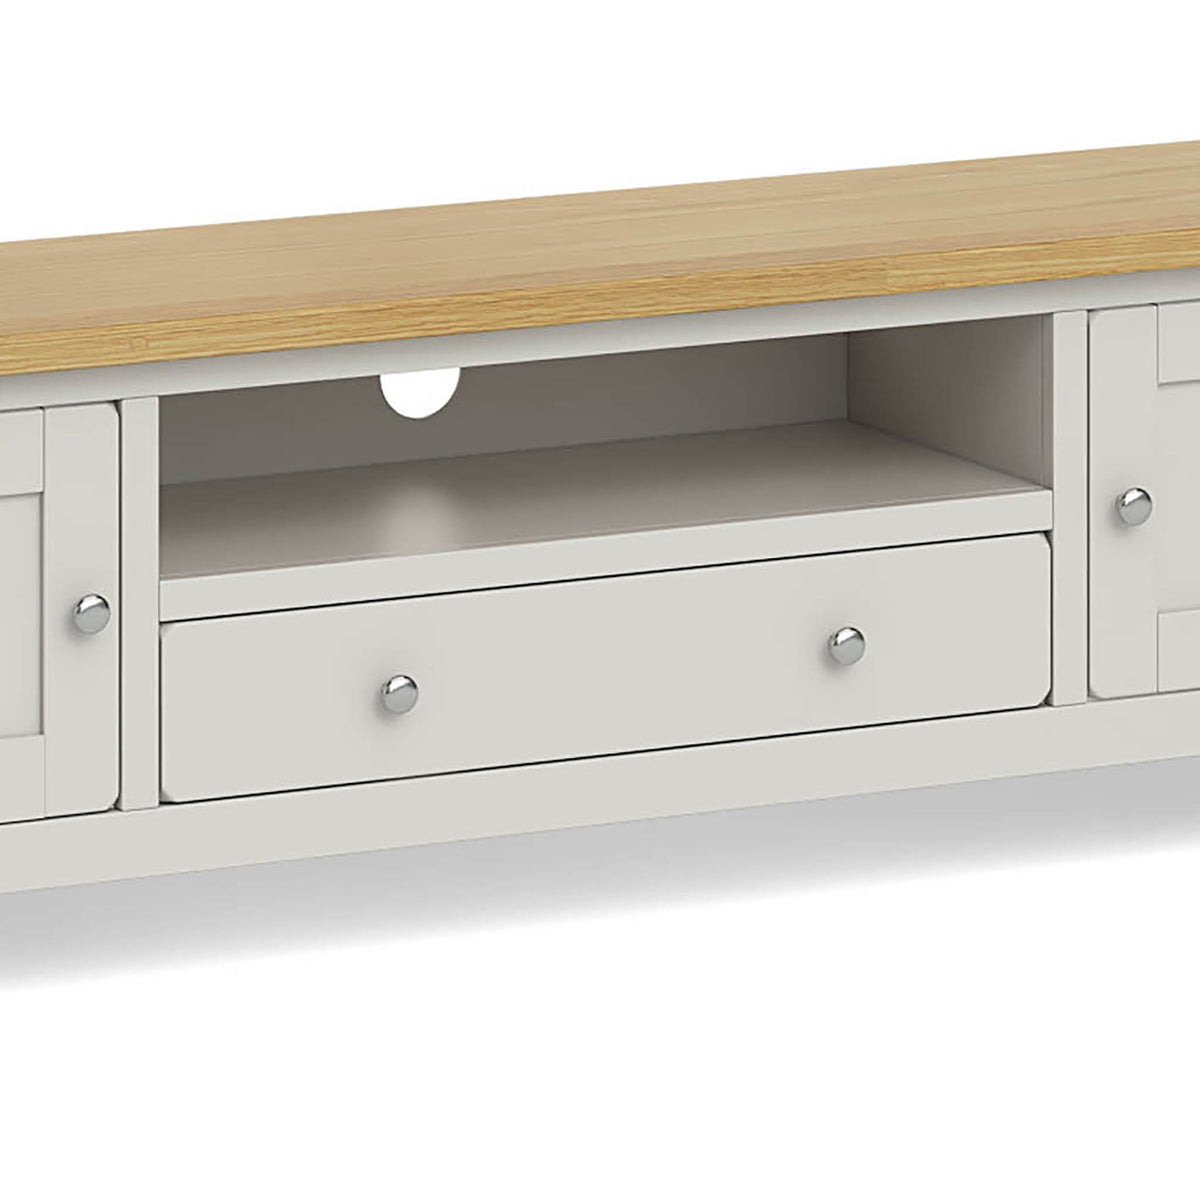 Lundy Grey Extra Large TV Stand - Close Up of Drawer